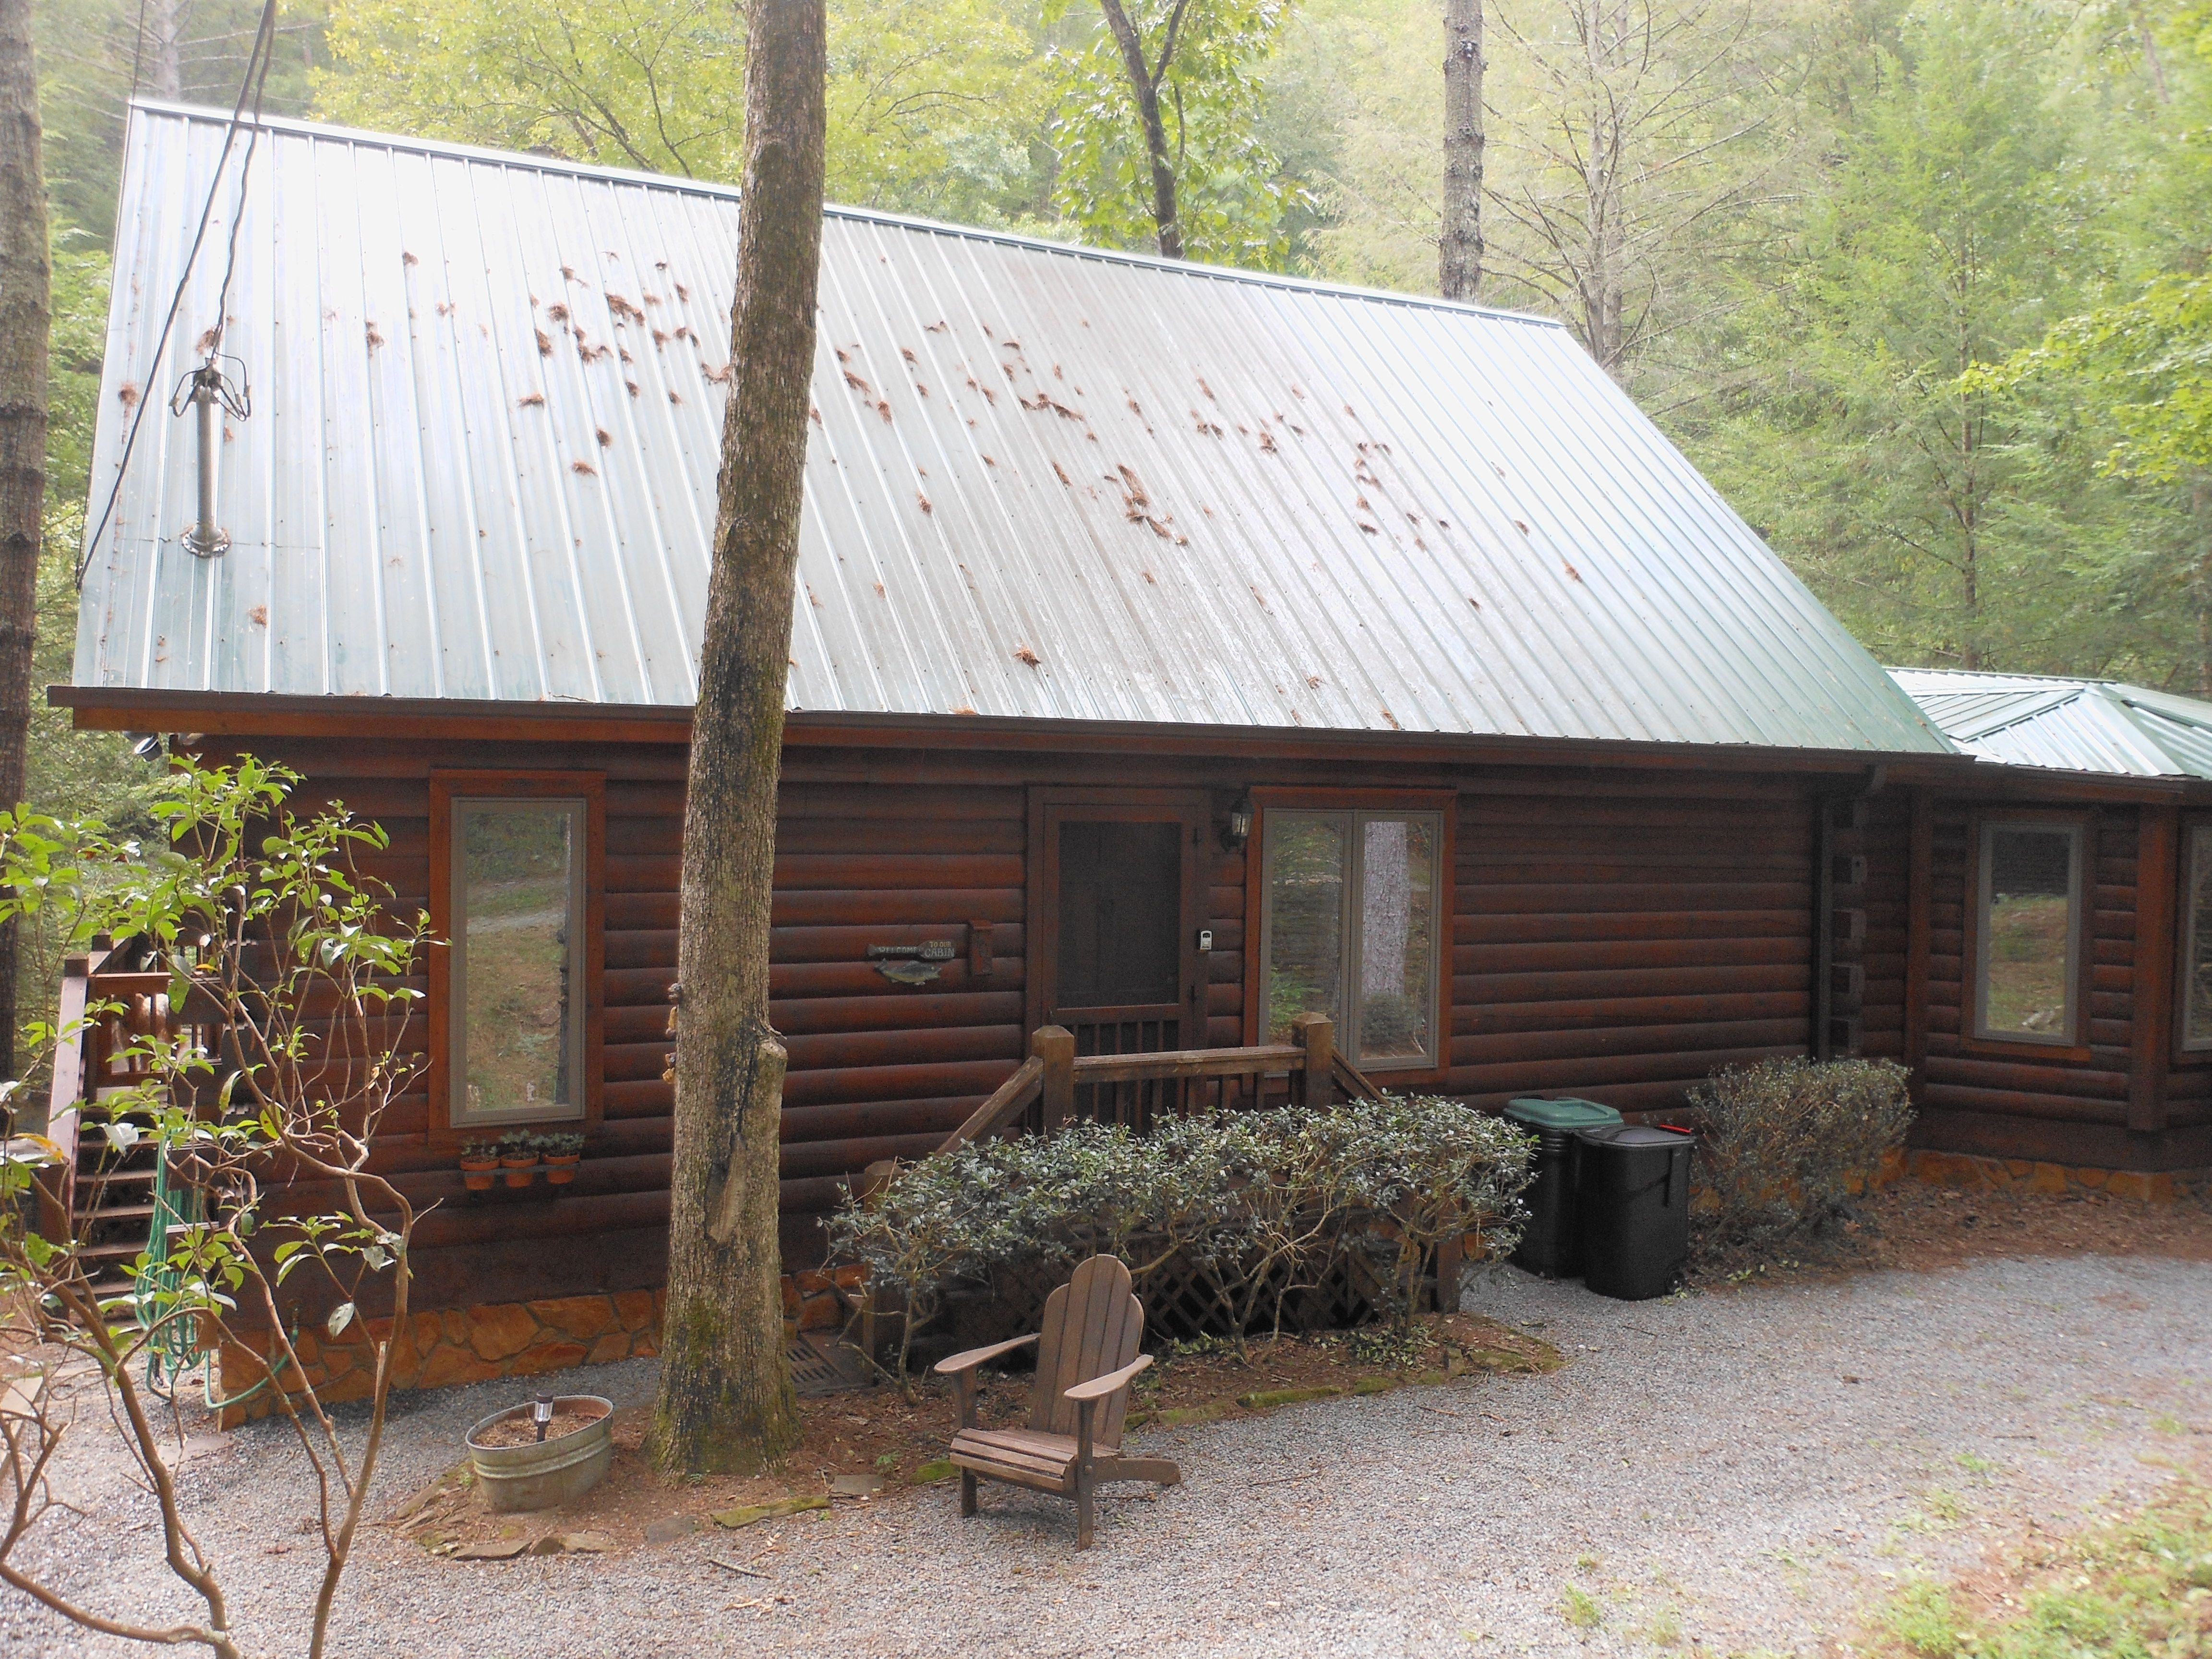 cabins living ga cliffhanger room cabin chatsworth located in and lovely decorated pin ellijay between rented wilderness view georgia by